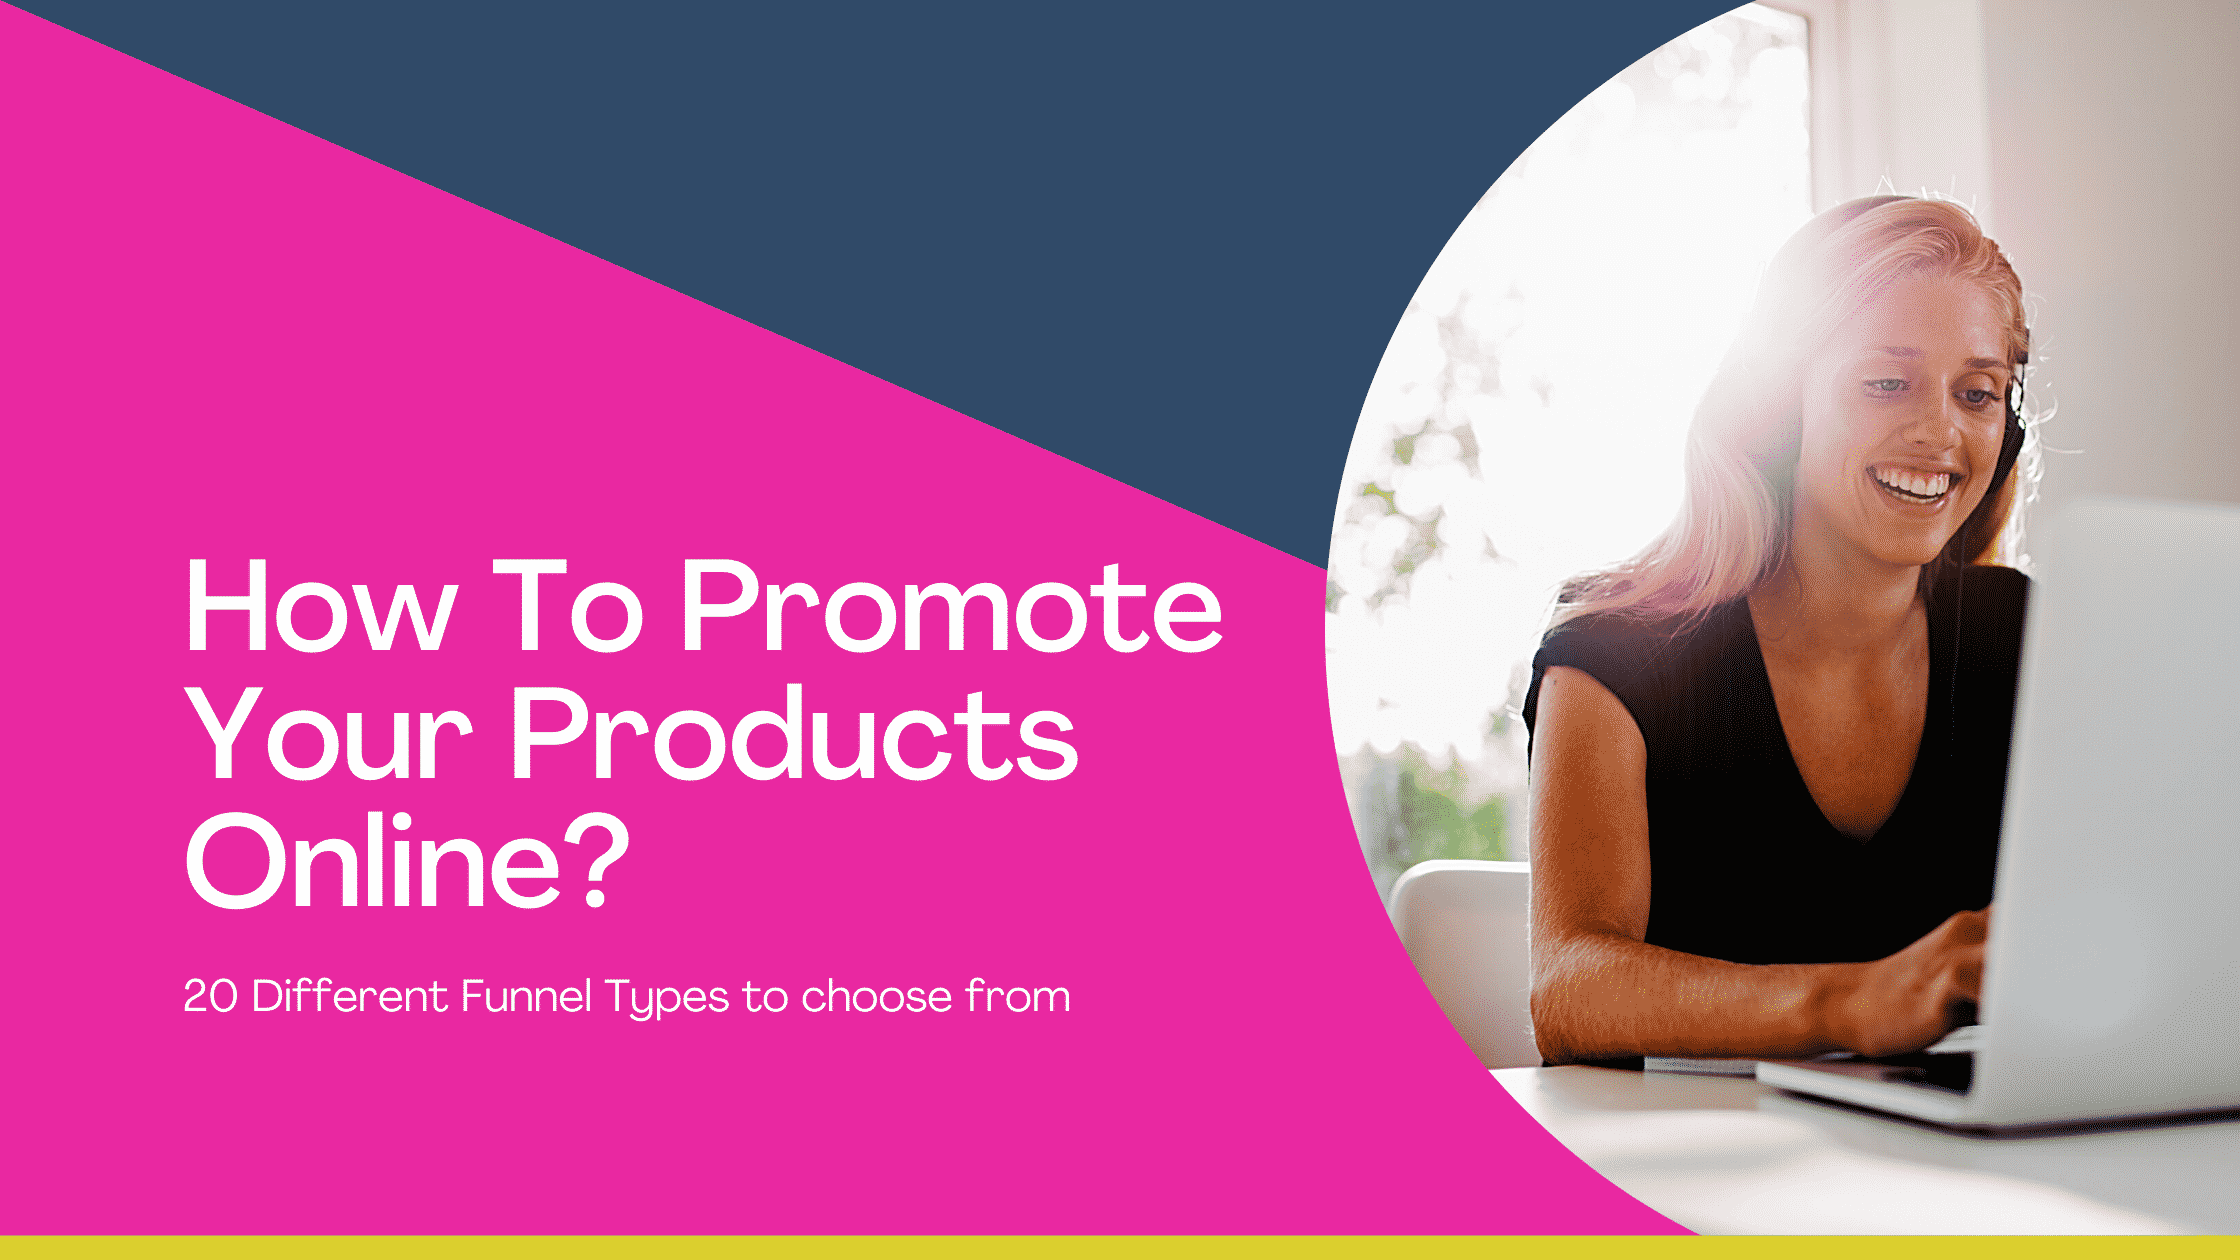 20 Different Funnel Types You Can Use To Market Your Business